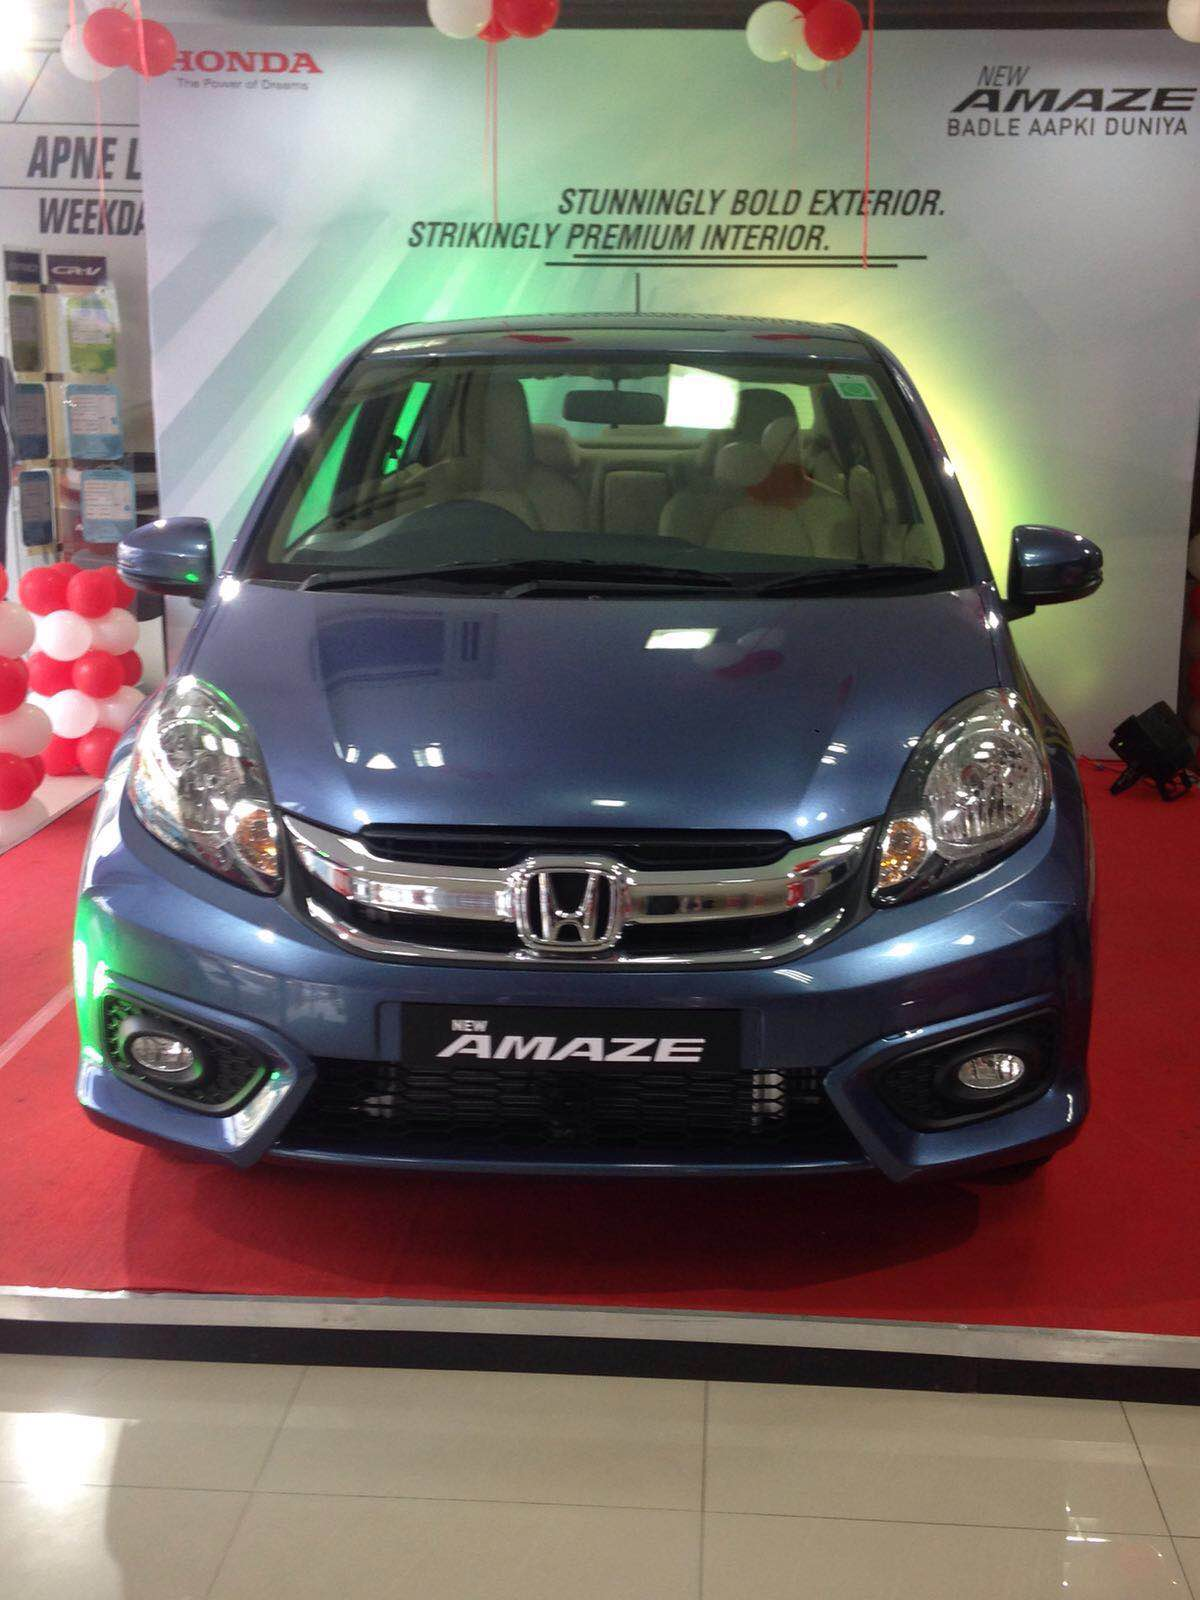 The New Facelift Amaze is on display at Pride Honda Madhapur, drive home the stylist car. Booking are open.